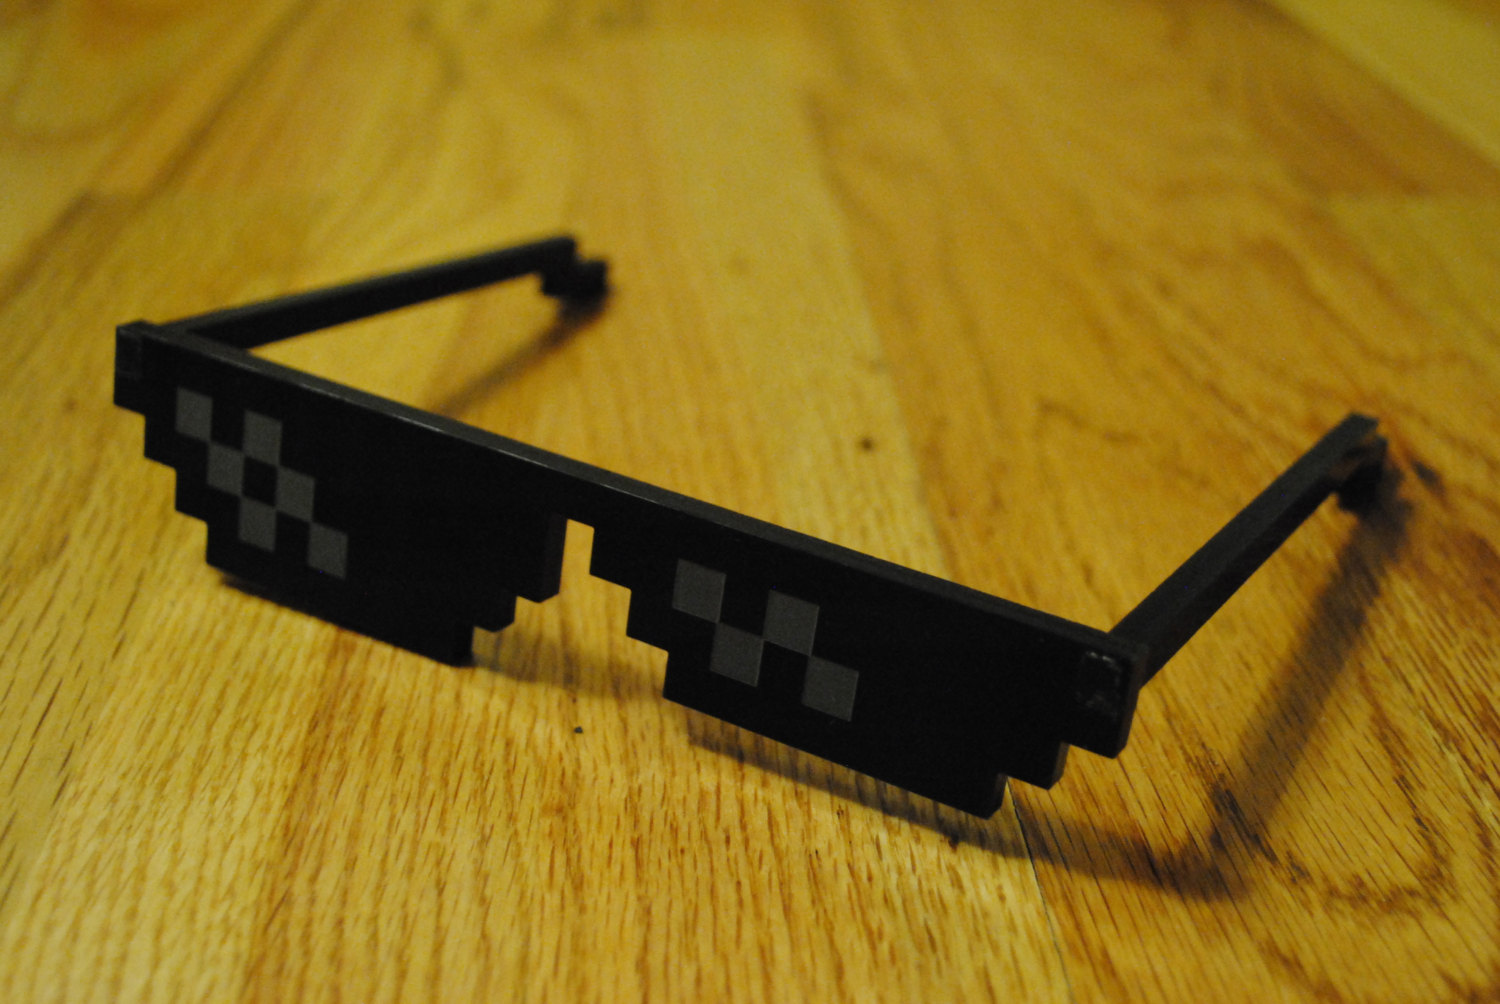 Pixel Sunglasses Meme  irl deal with it glasses deal with it know your meme